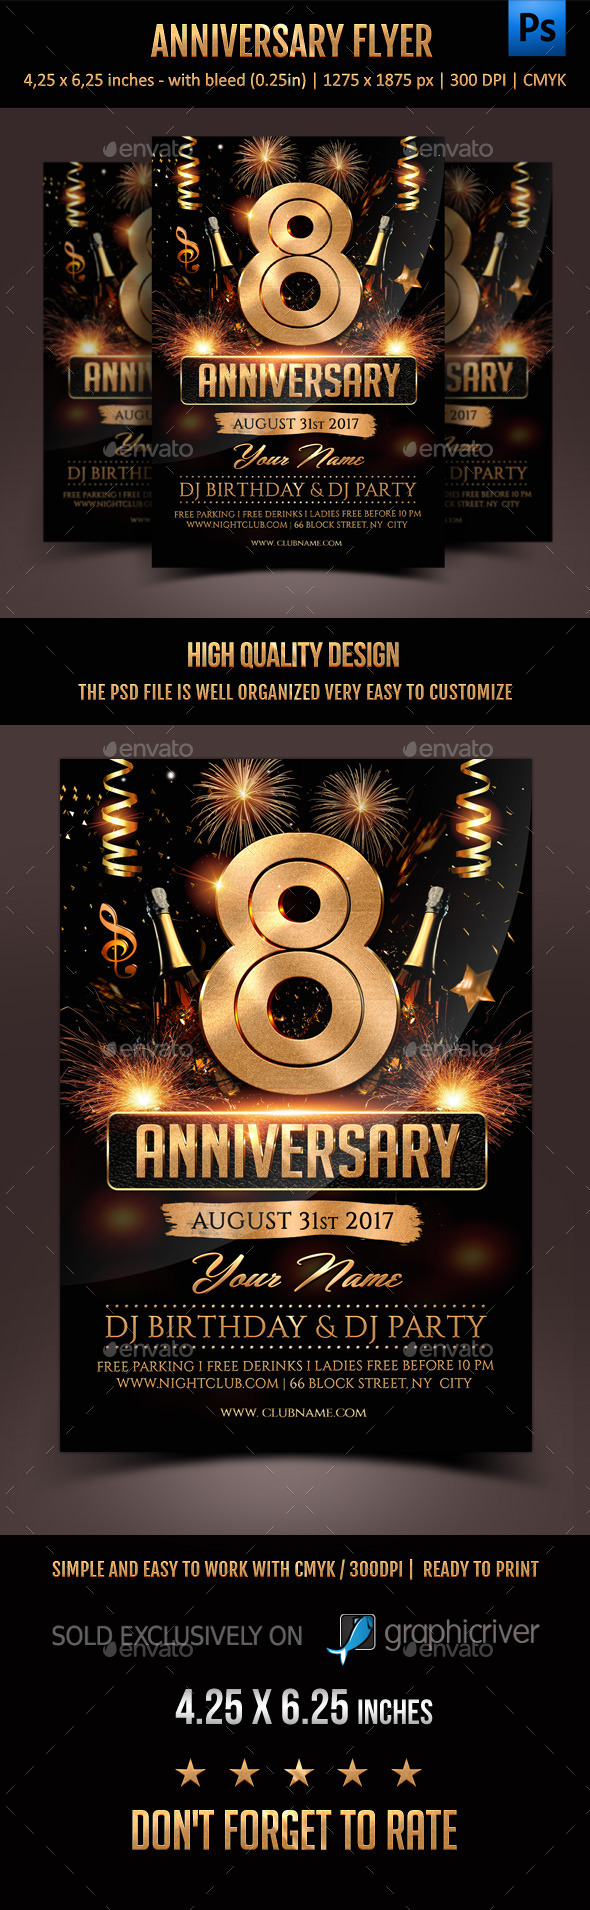 Anniversary Flyer by Rembassio – Anniversary Flyer